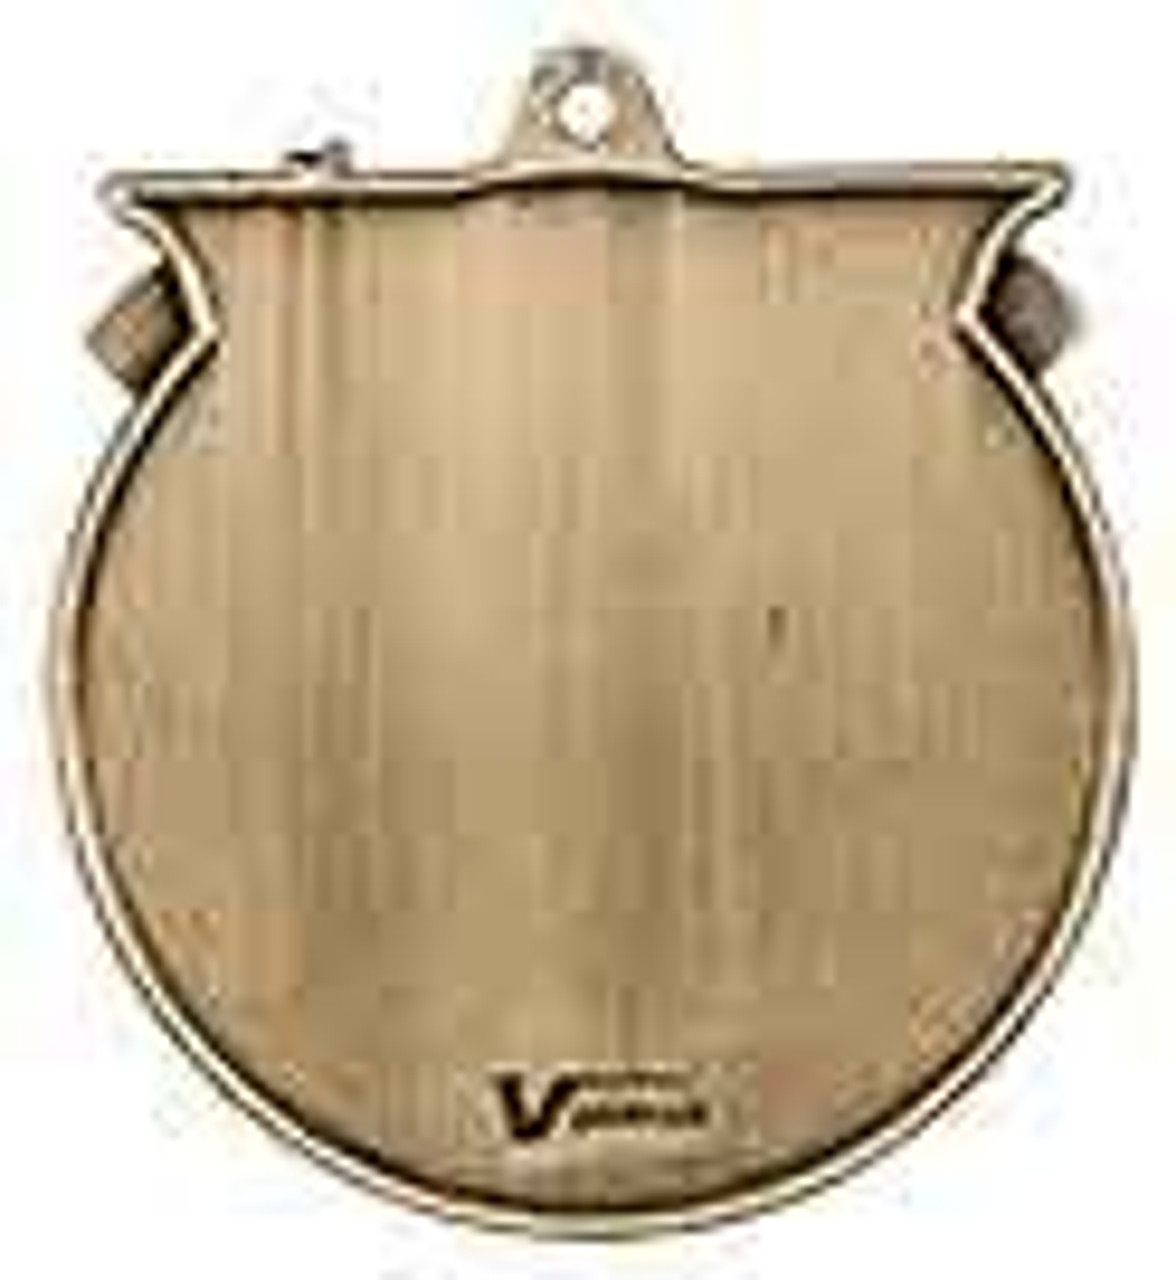 Back of Victory Medal